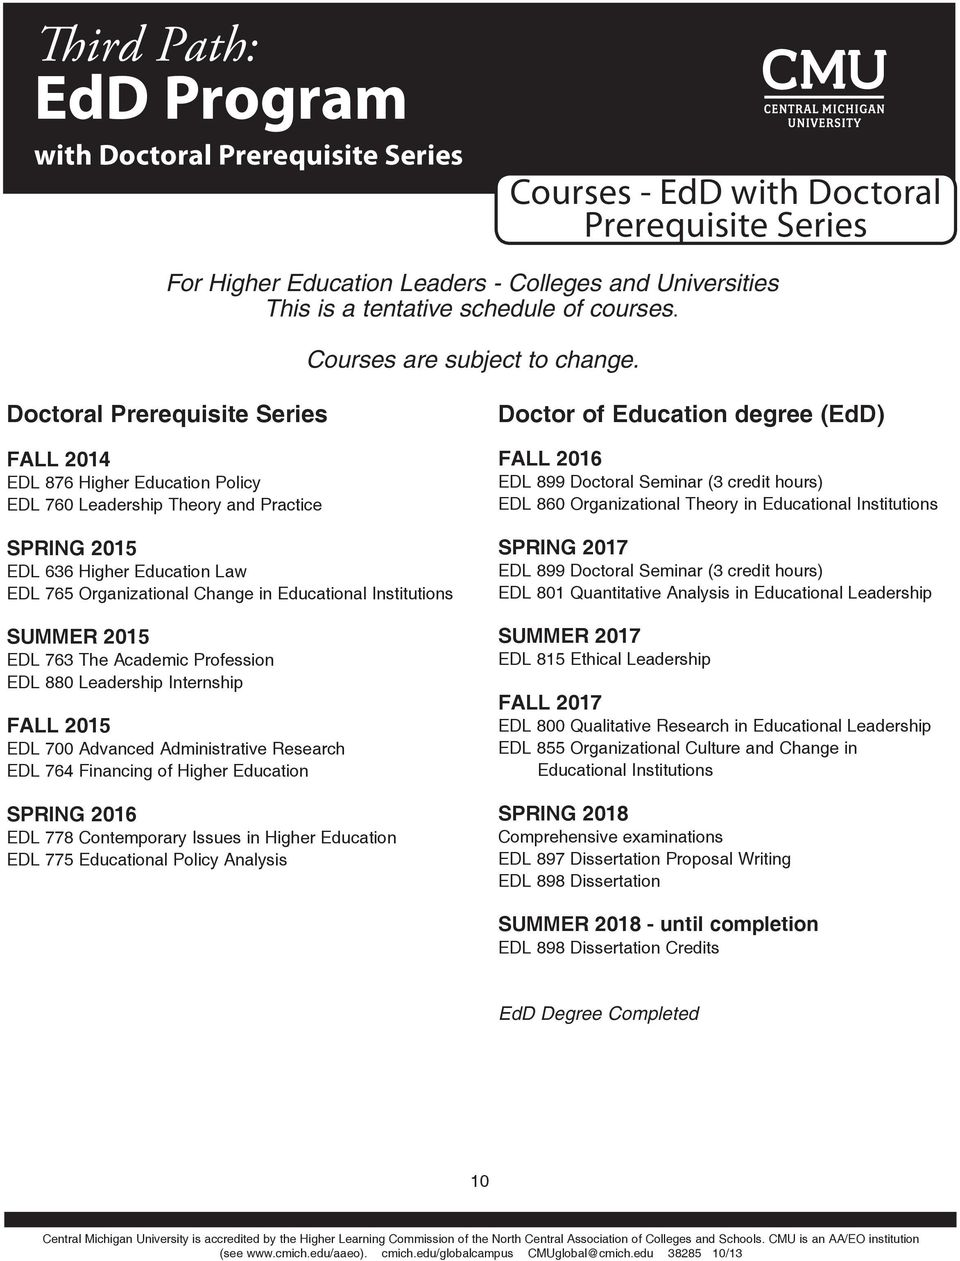 Doctoral Prerequisite Series FALL 2014 EDL 876 Higher Education Policy EDL 760 Leadership Theory and Practice SPRING 2015 EDL 636 Higher Education Law EDL 765 Organizational Change in Educational